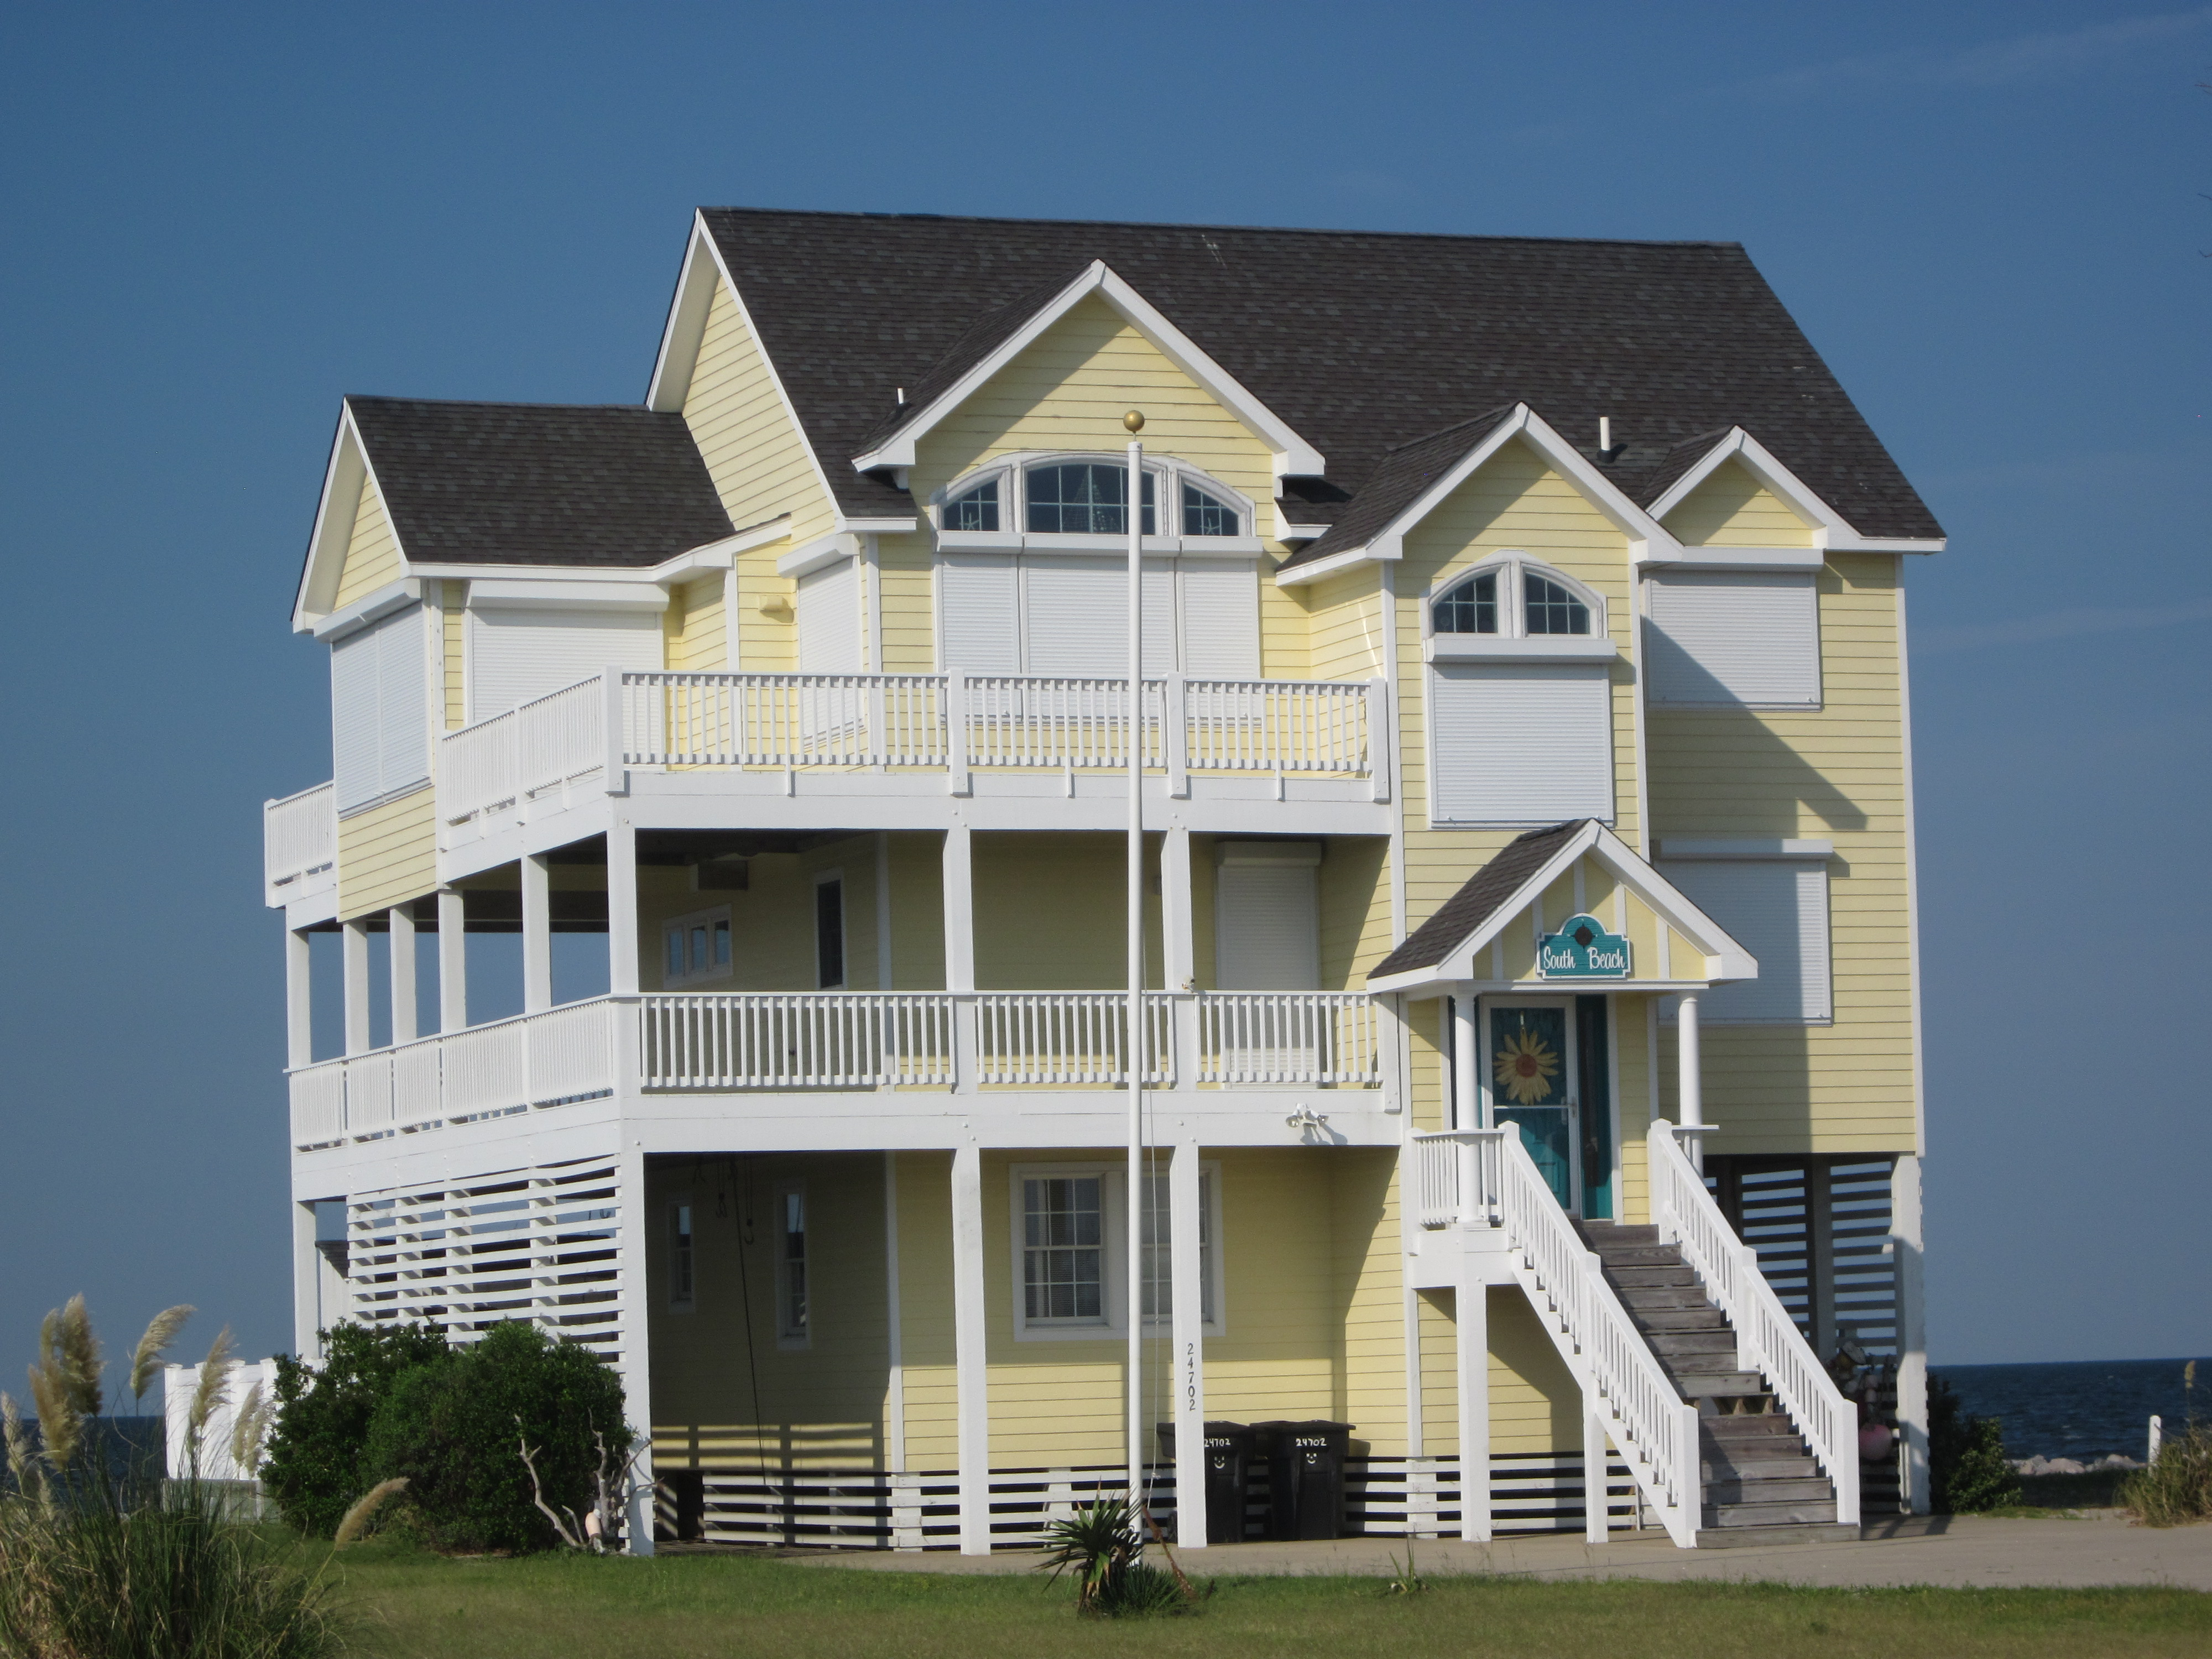 property bacchus redawning cottages rental vacation in nags ii head